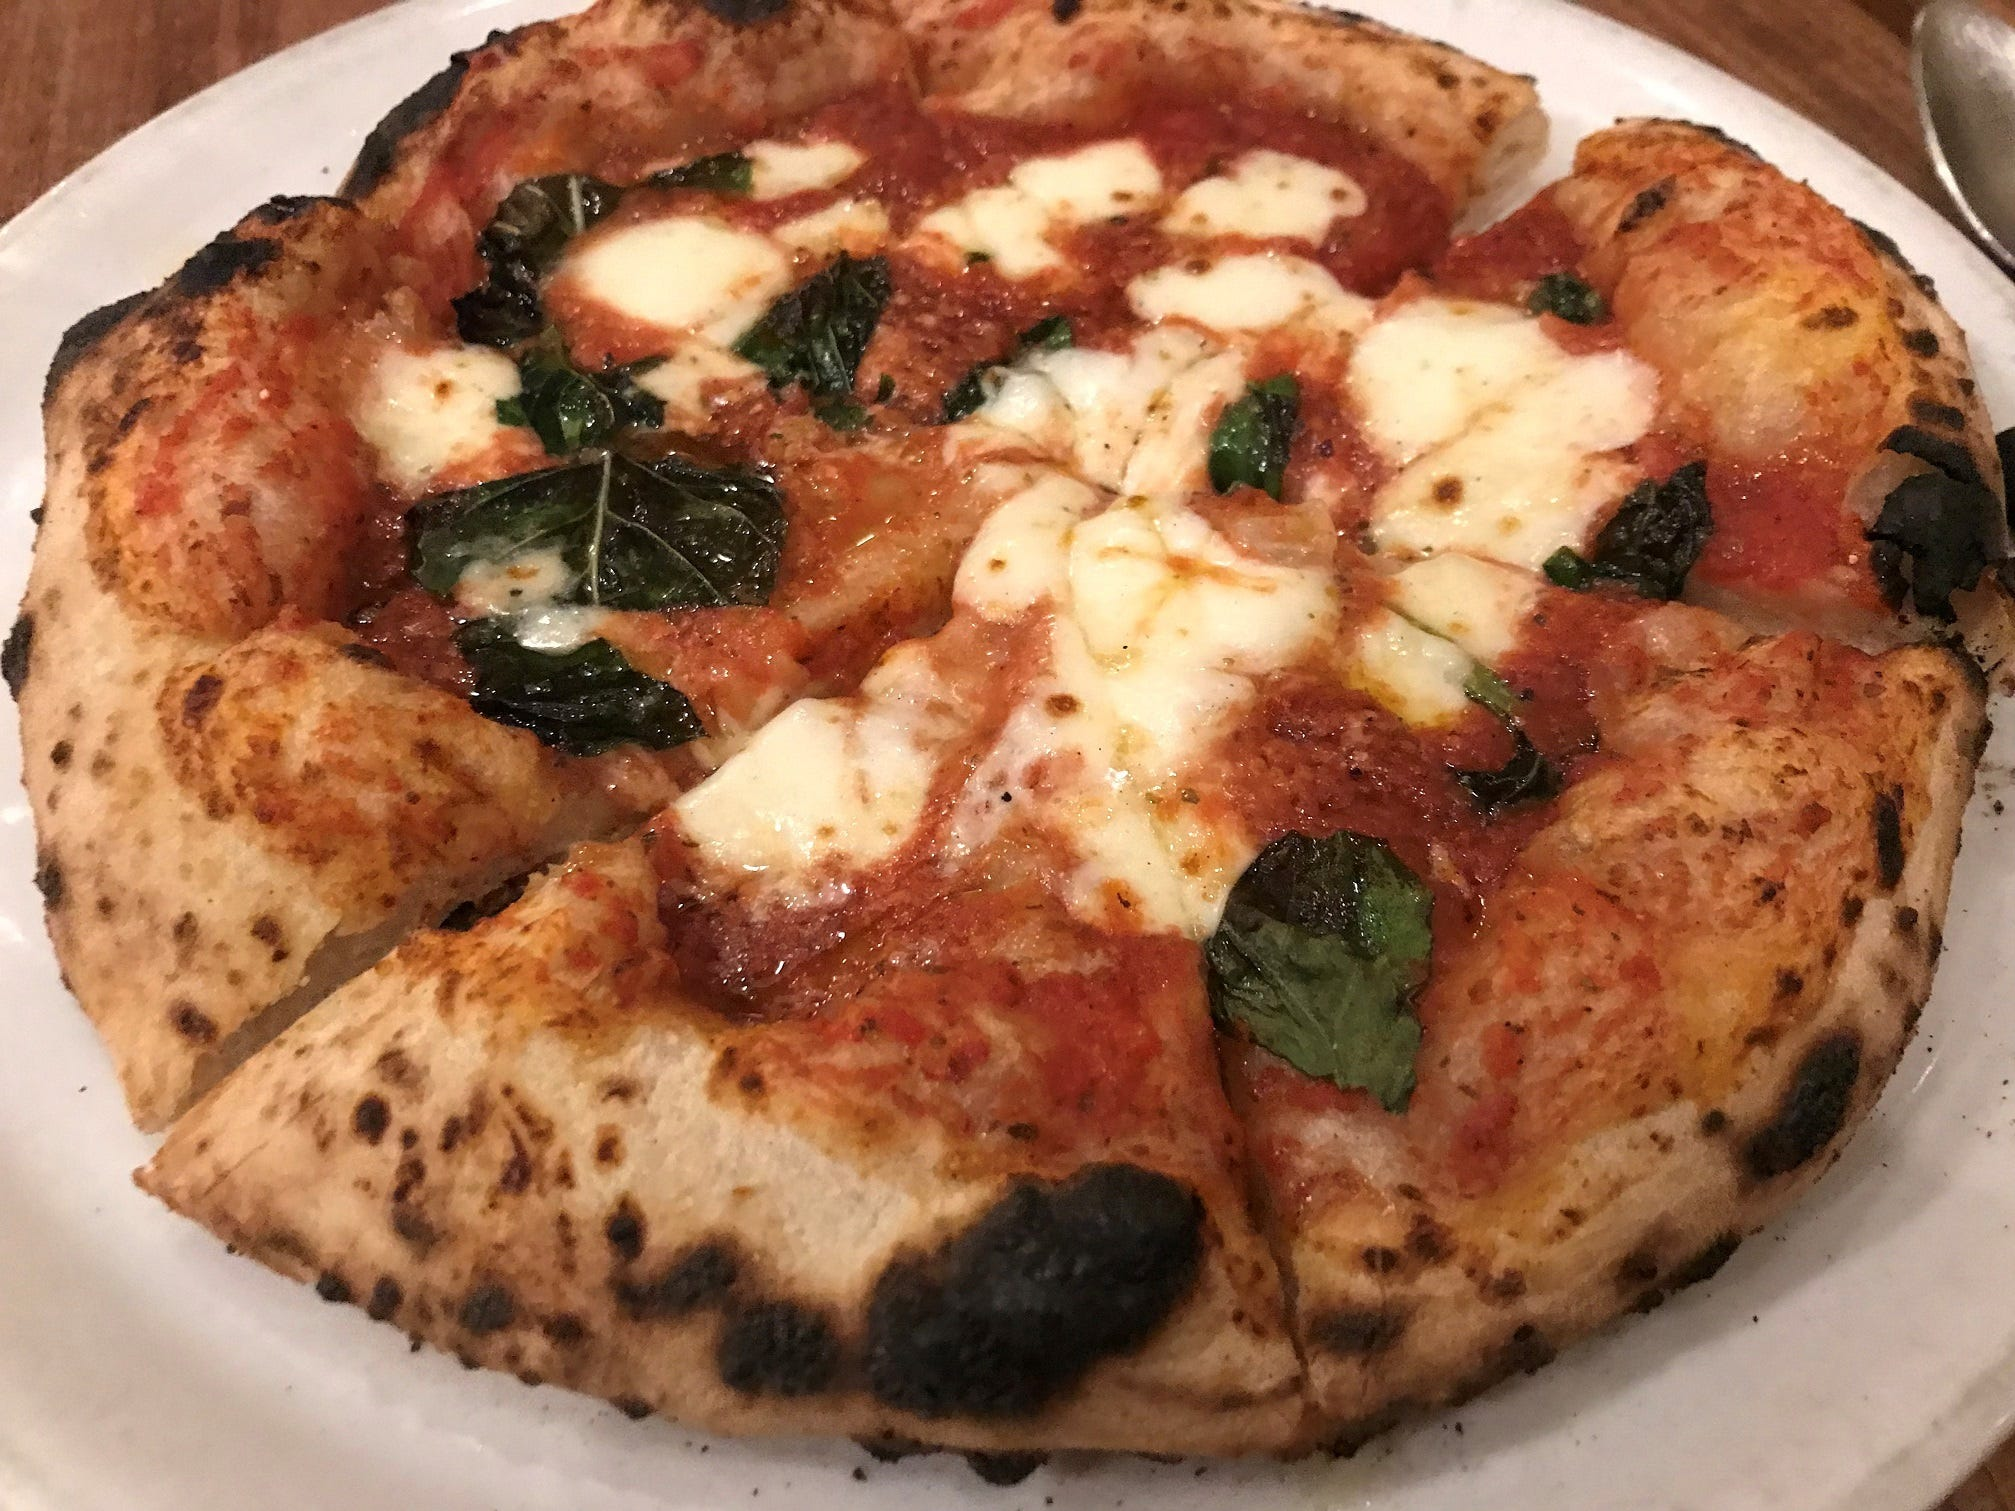 The margherita pizza at Aqulia Pizza Al Forno has a perfectly charred crust.